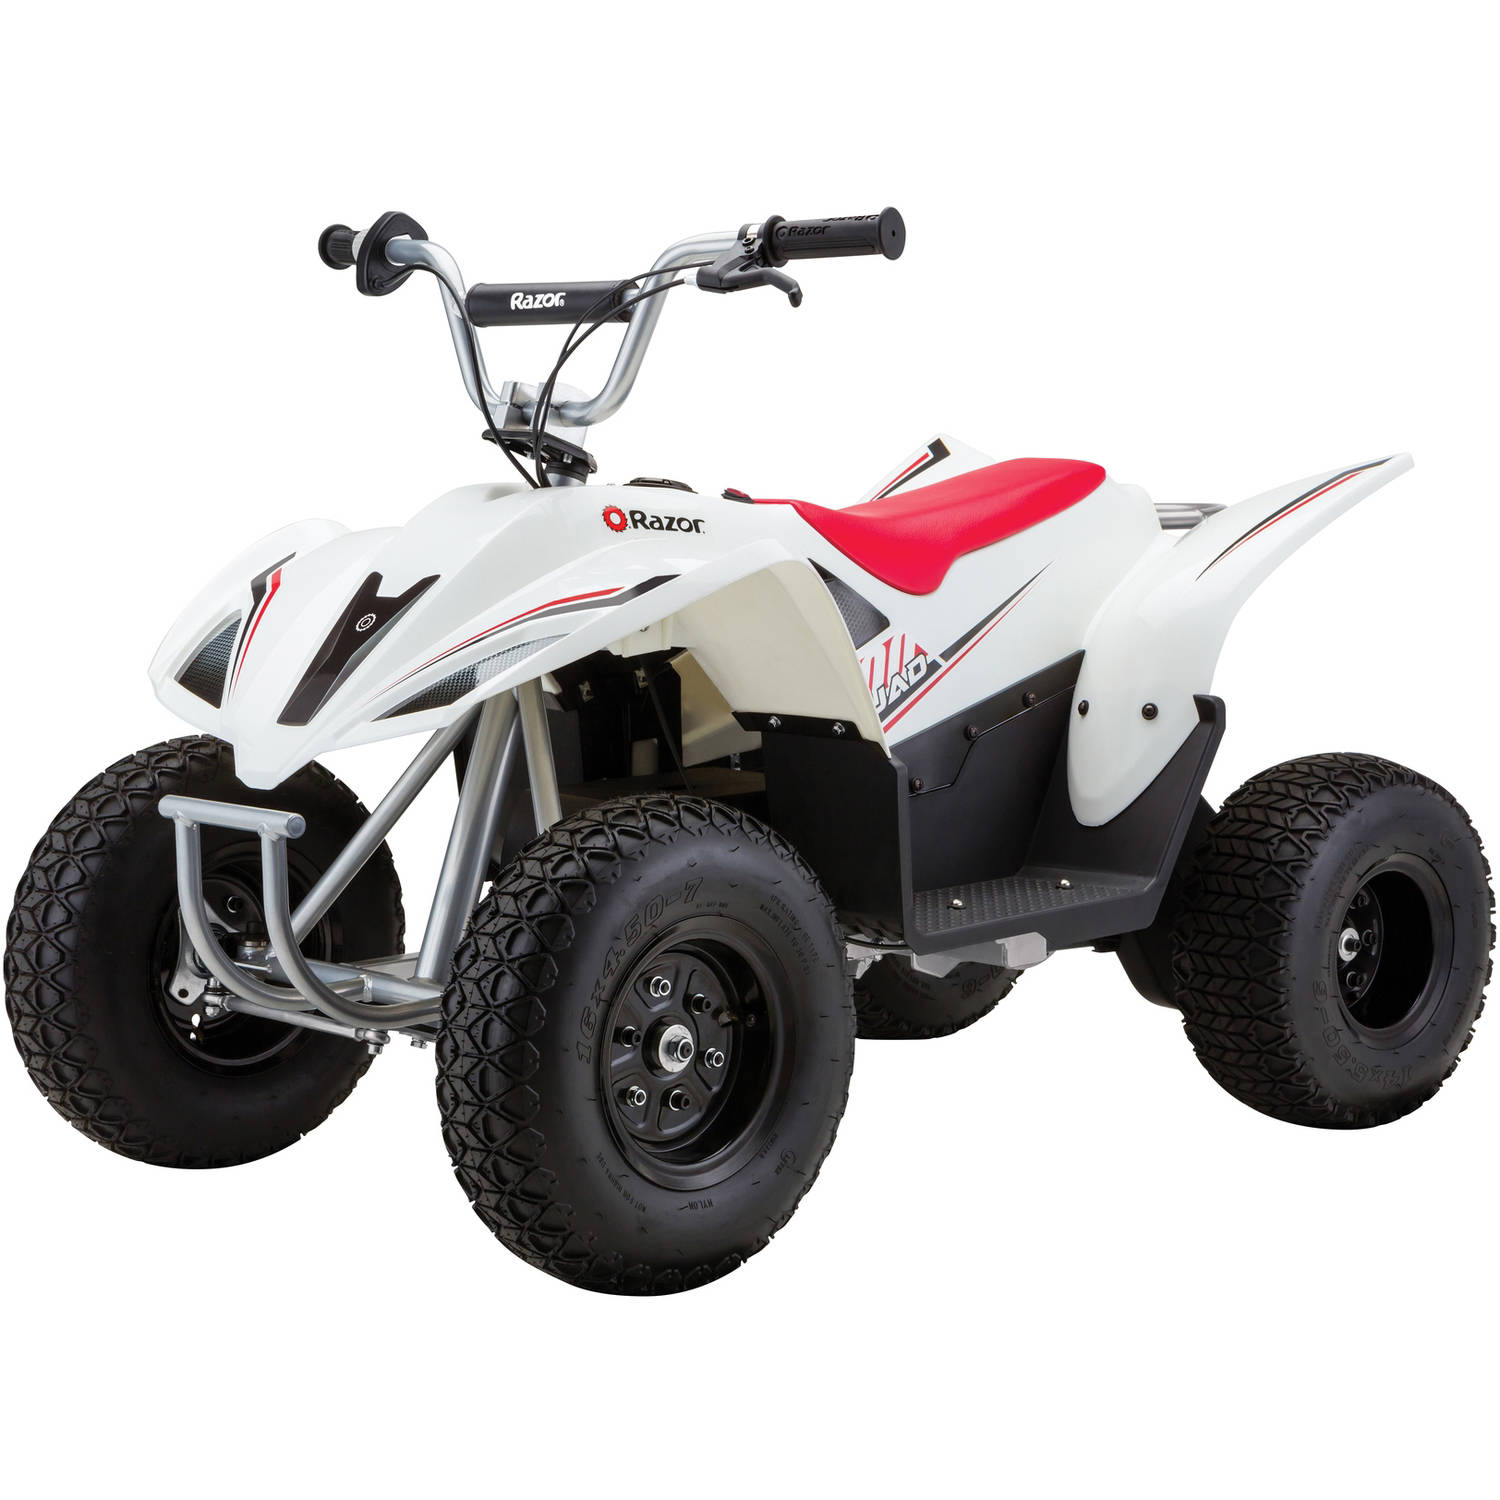 Razor Dirt Quad 500 - Electric Powered, Larger Frame, and